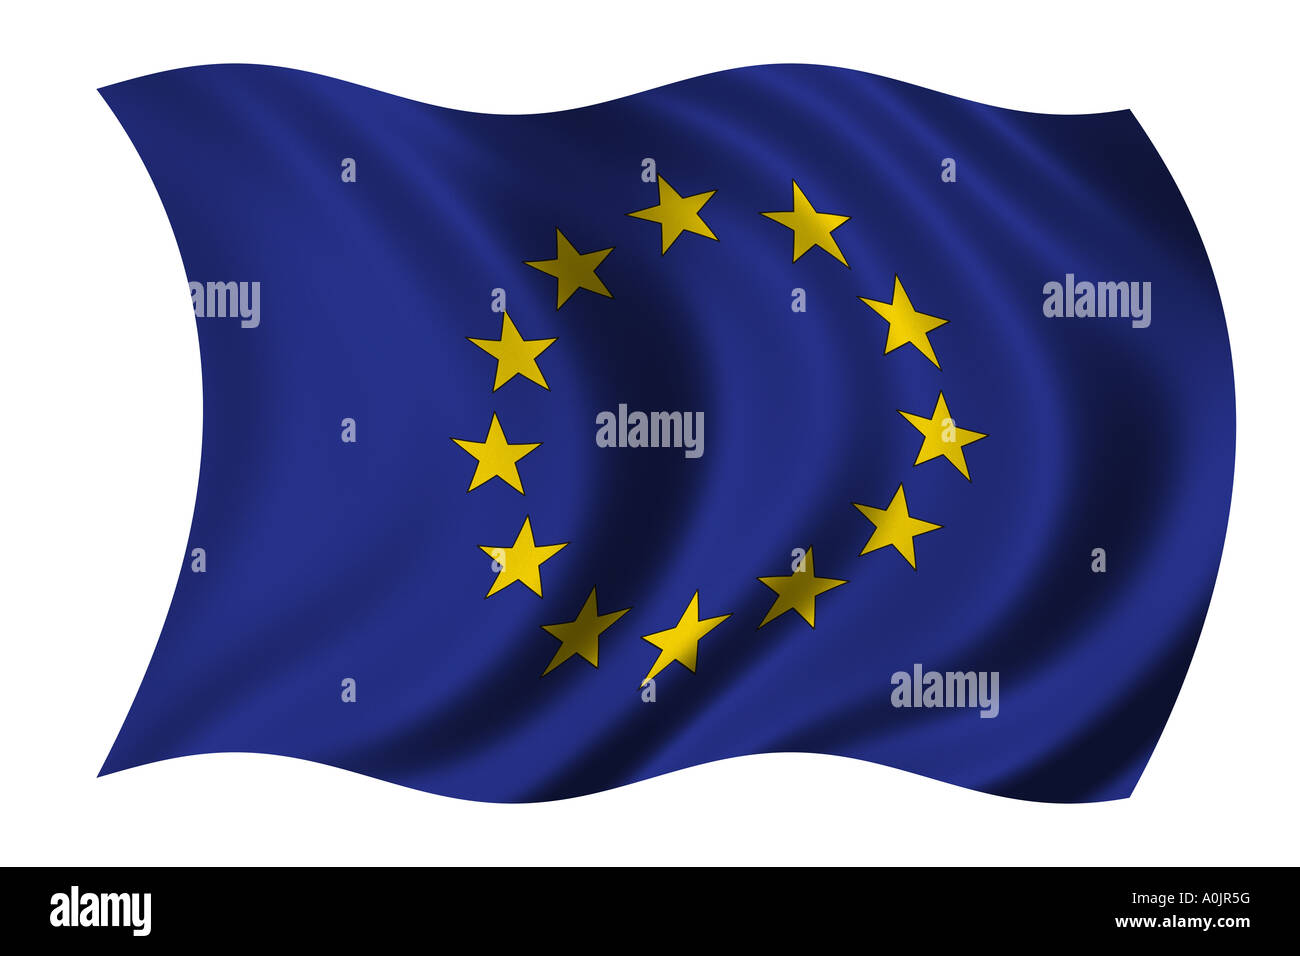 European Union Flag waving in the wind clipping path included - Stock Image